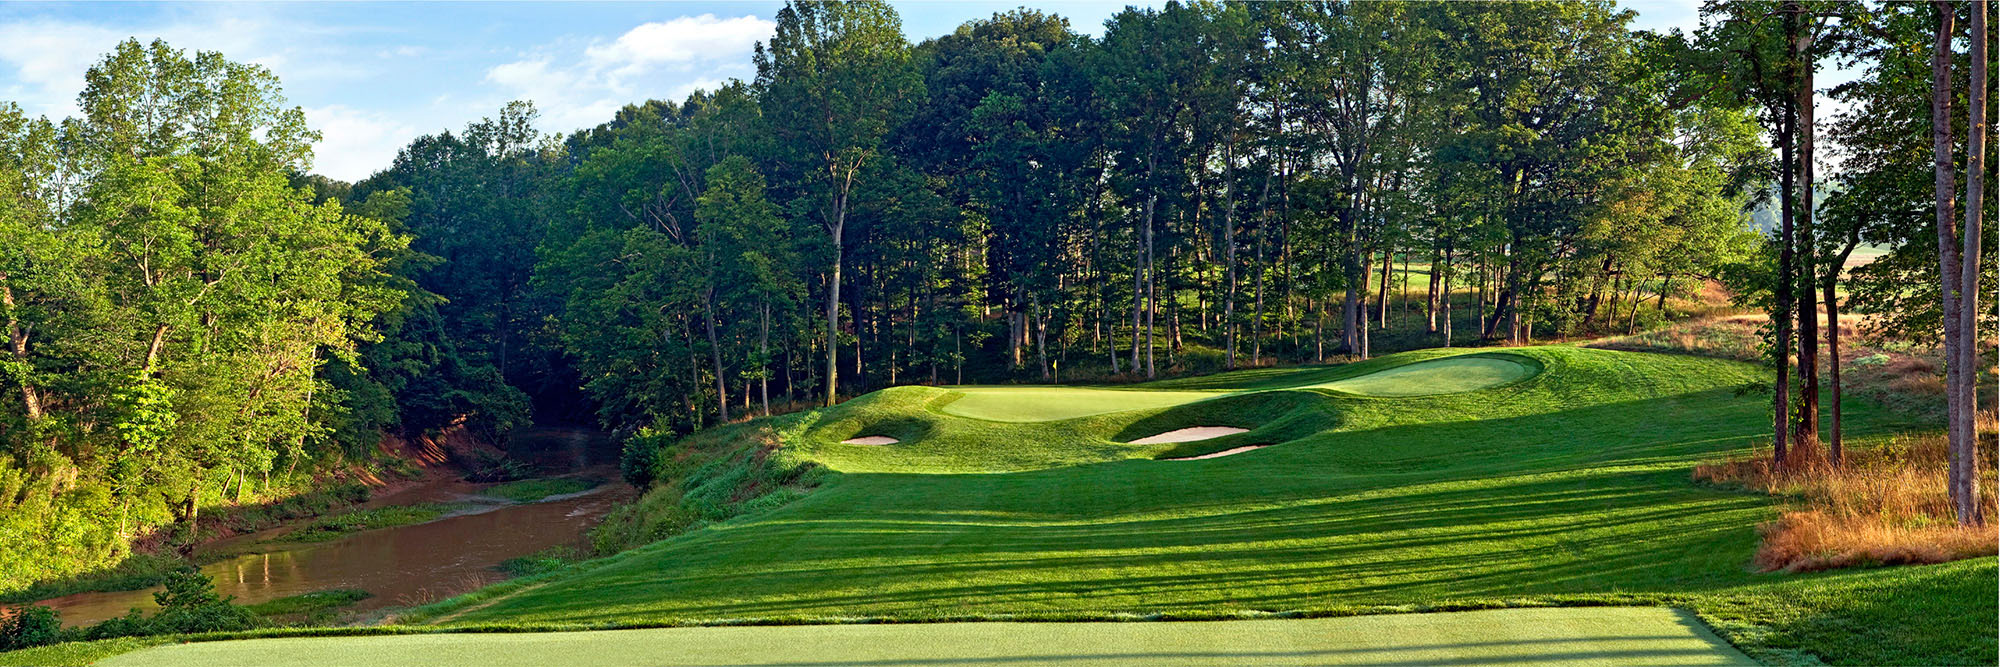 Golf Course Image - Olde Stone No. 16